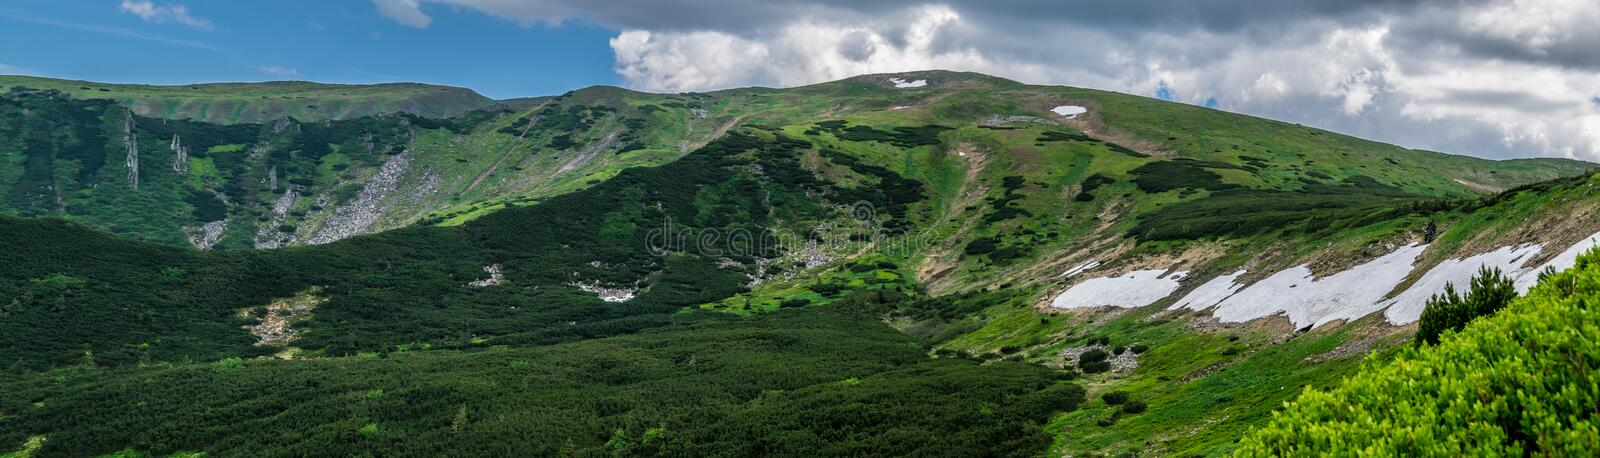 Panorama of Carpathian mountains landscape. Panorama of Carpathian mountain range in Ukraine. Snow on shaded mountainside. Carpathian National Nature Park in royalty free stock photography